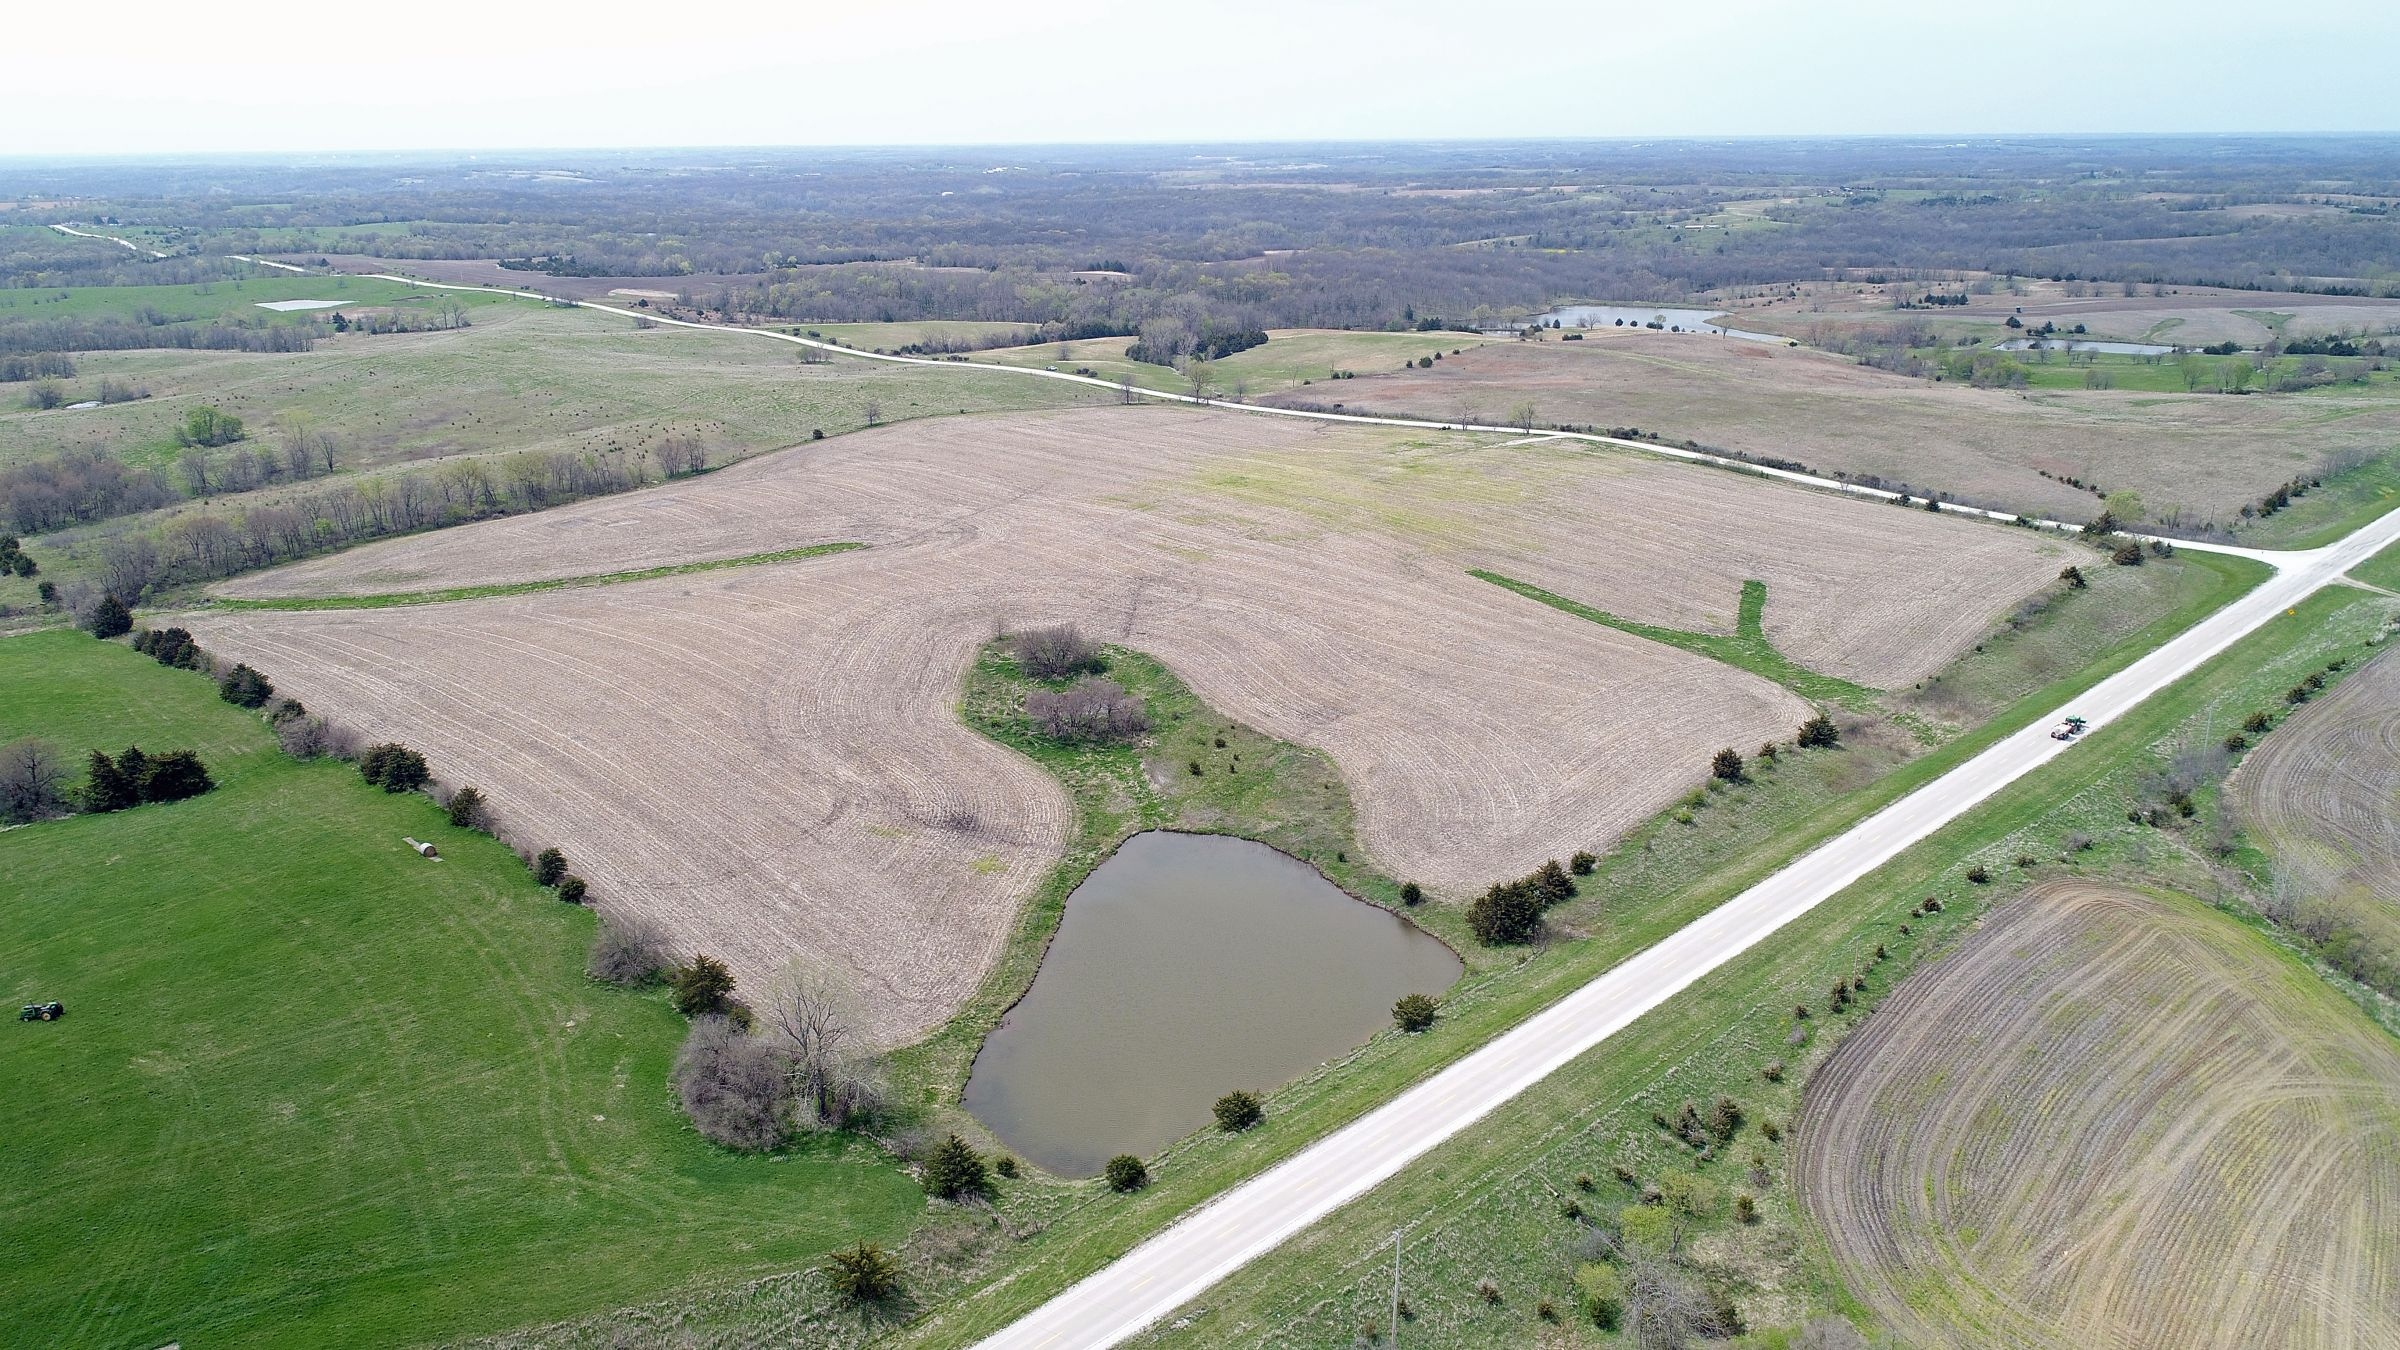 land-decatur-county-iowa-39-acres-listing-number-15495-1-2021-04-27-215004.JPG